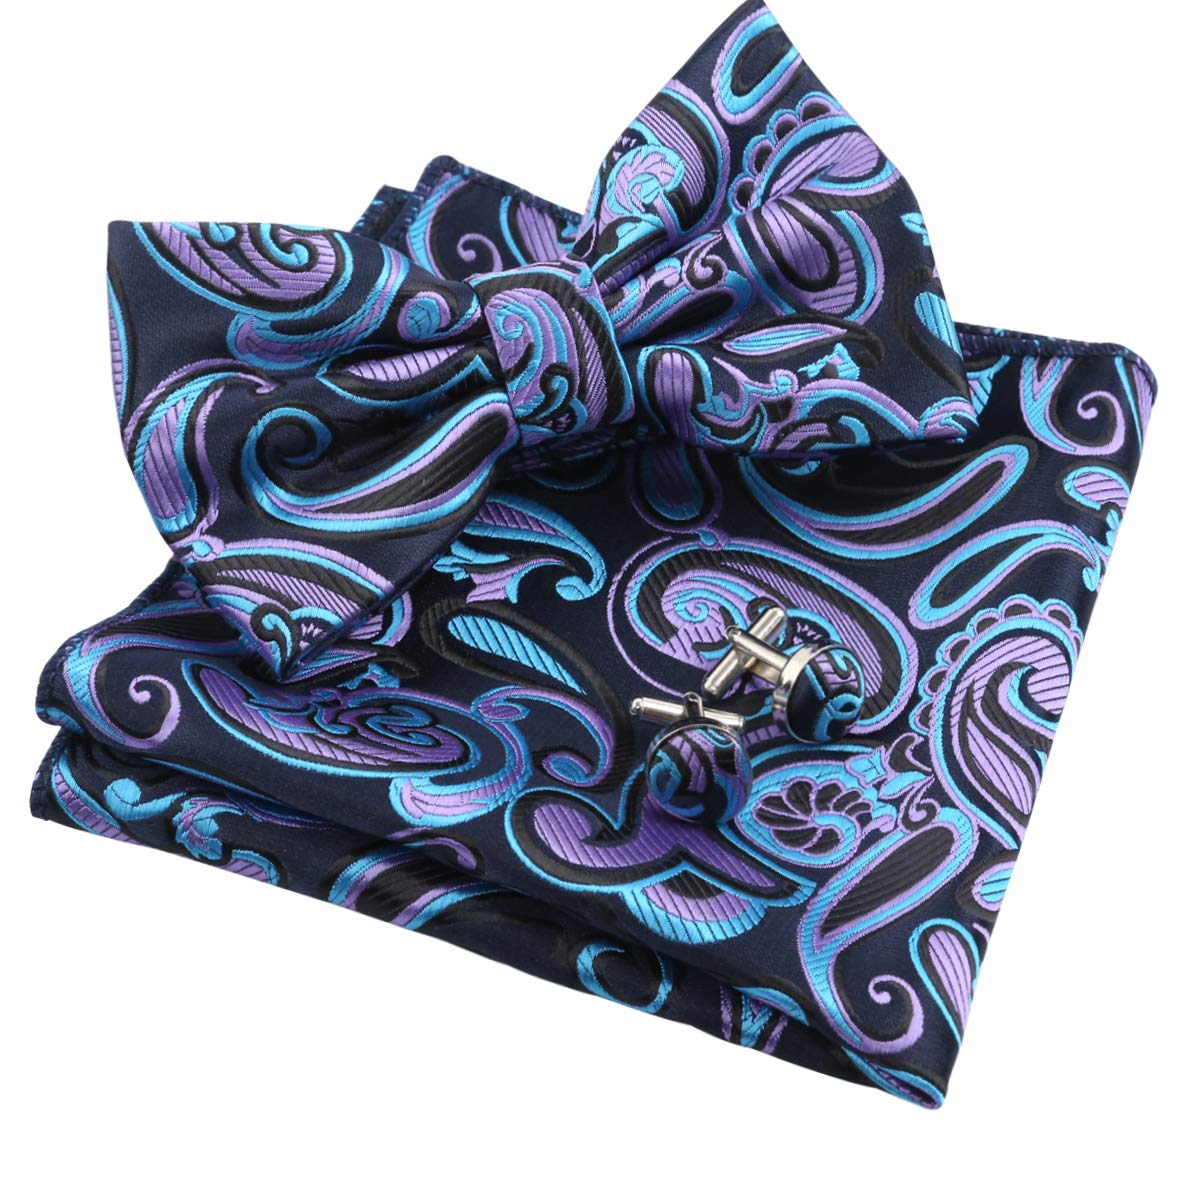 Hanky and Cufflinks Set Black+Blue+Hot Pink Alizeal Mens Floral Paisley Pre-tied Bow Tie